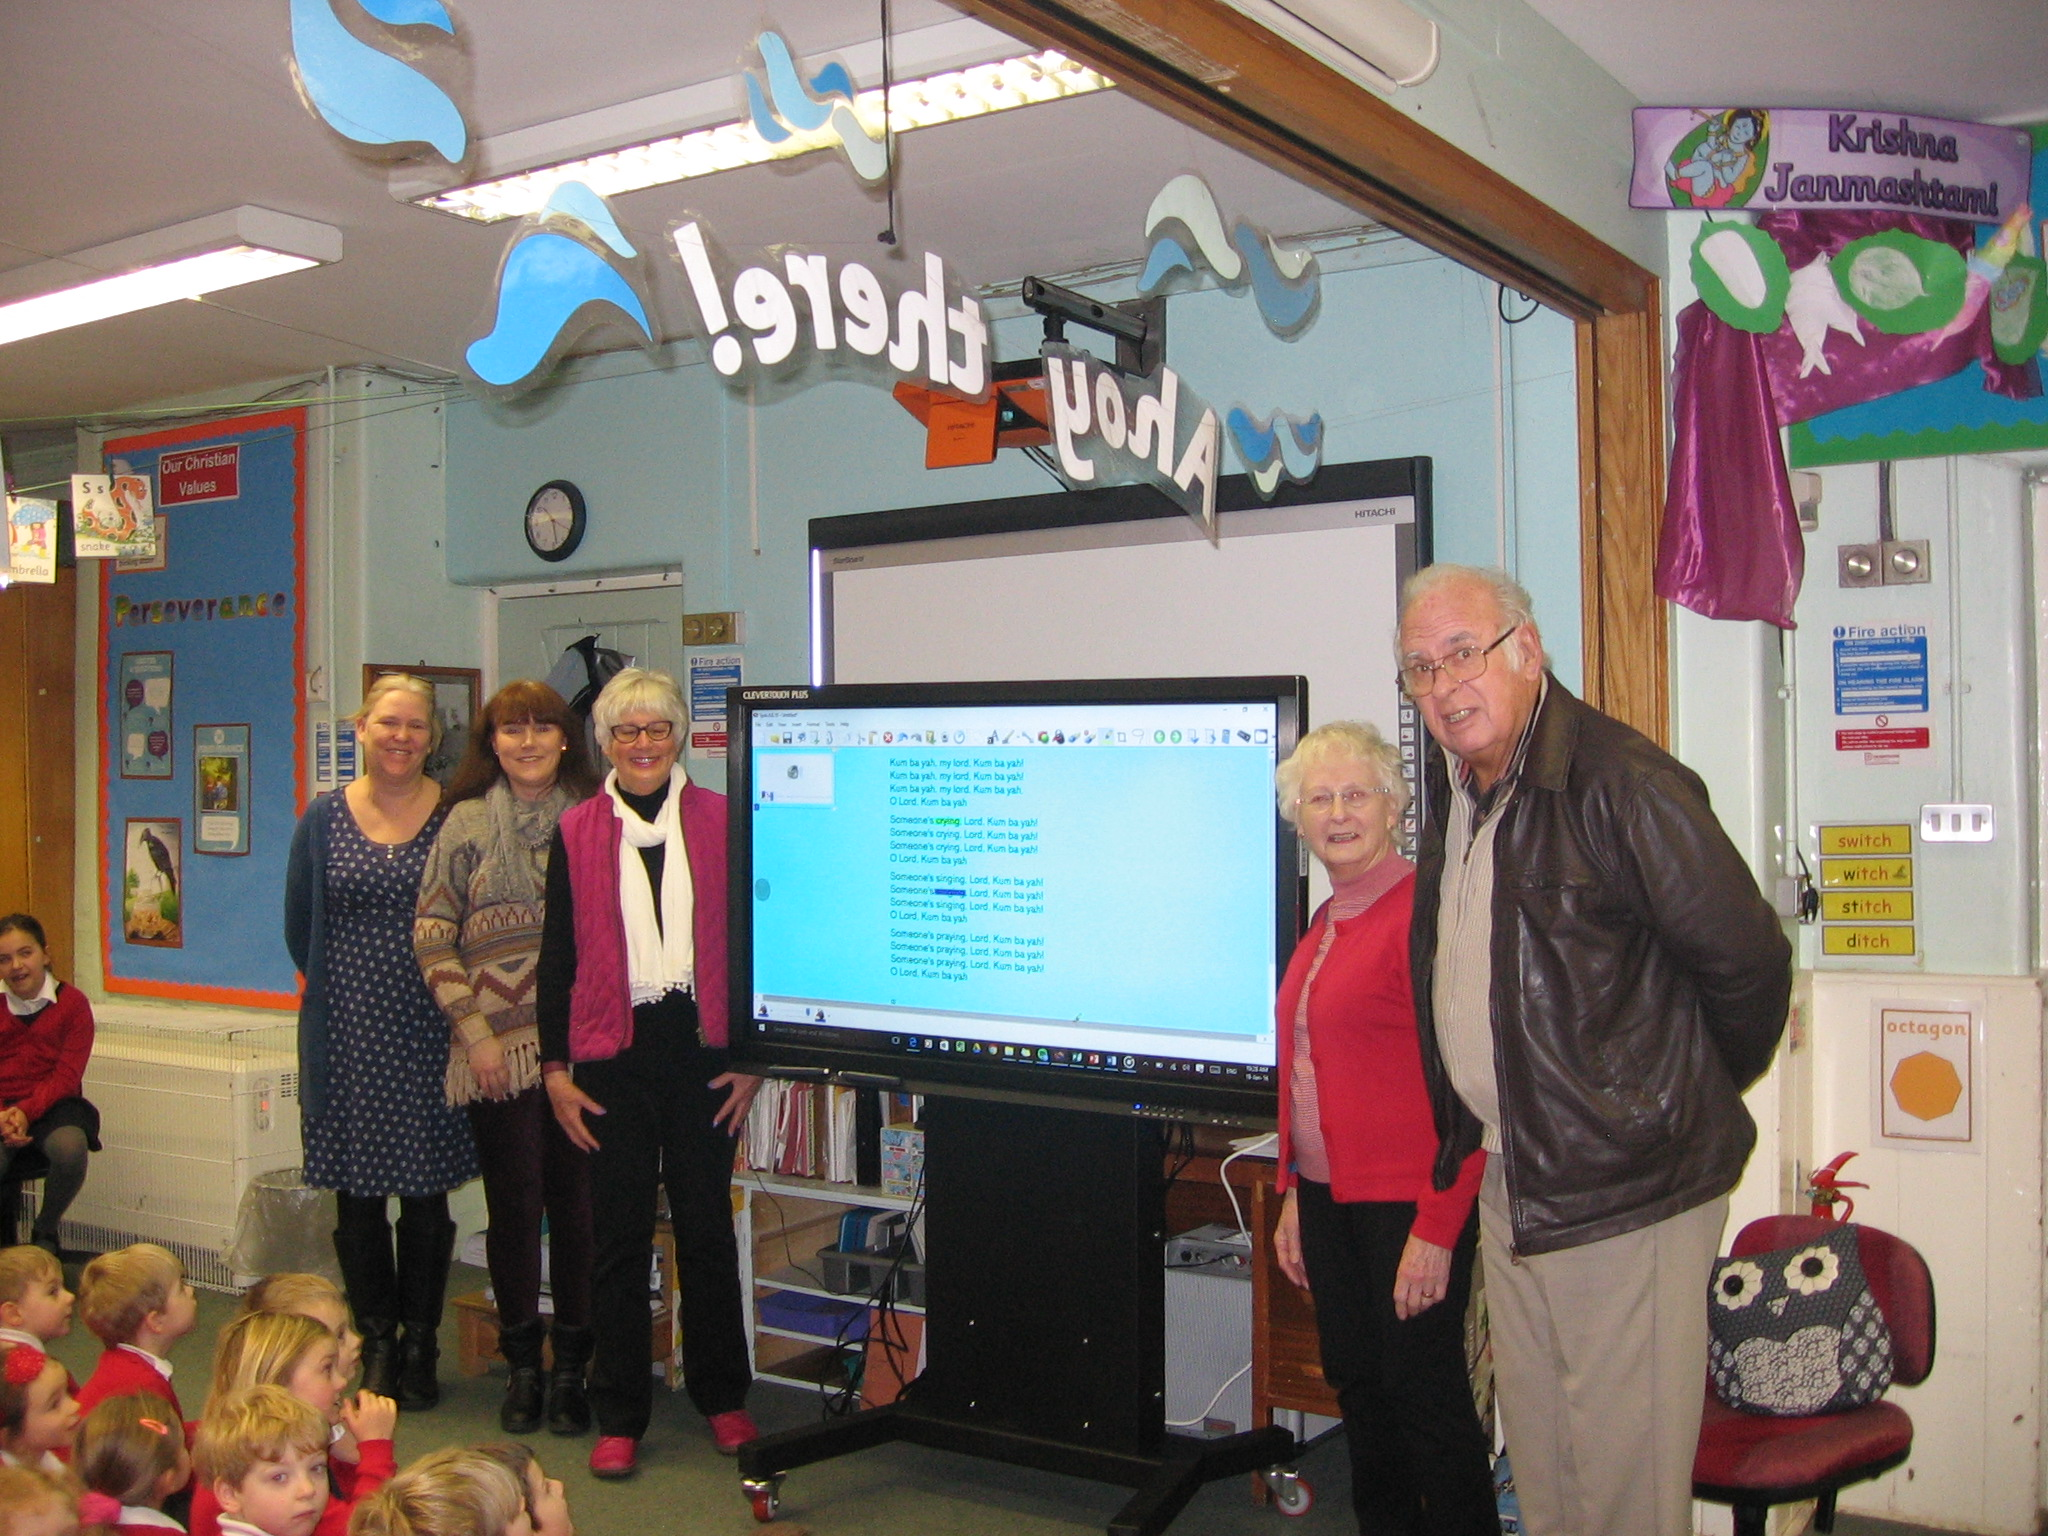 Presentation of the new Clever Touch Tvs by the Crich Carr Trust